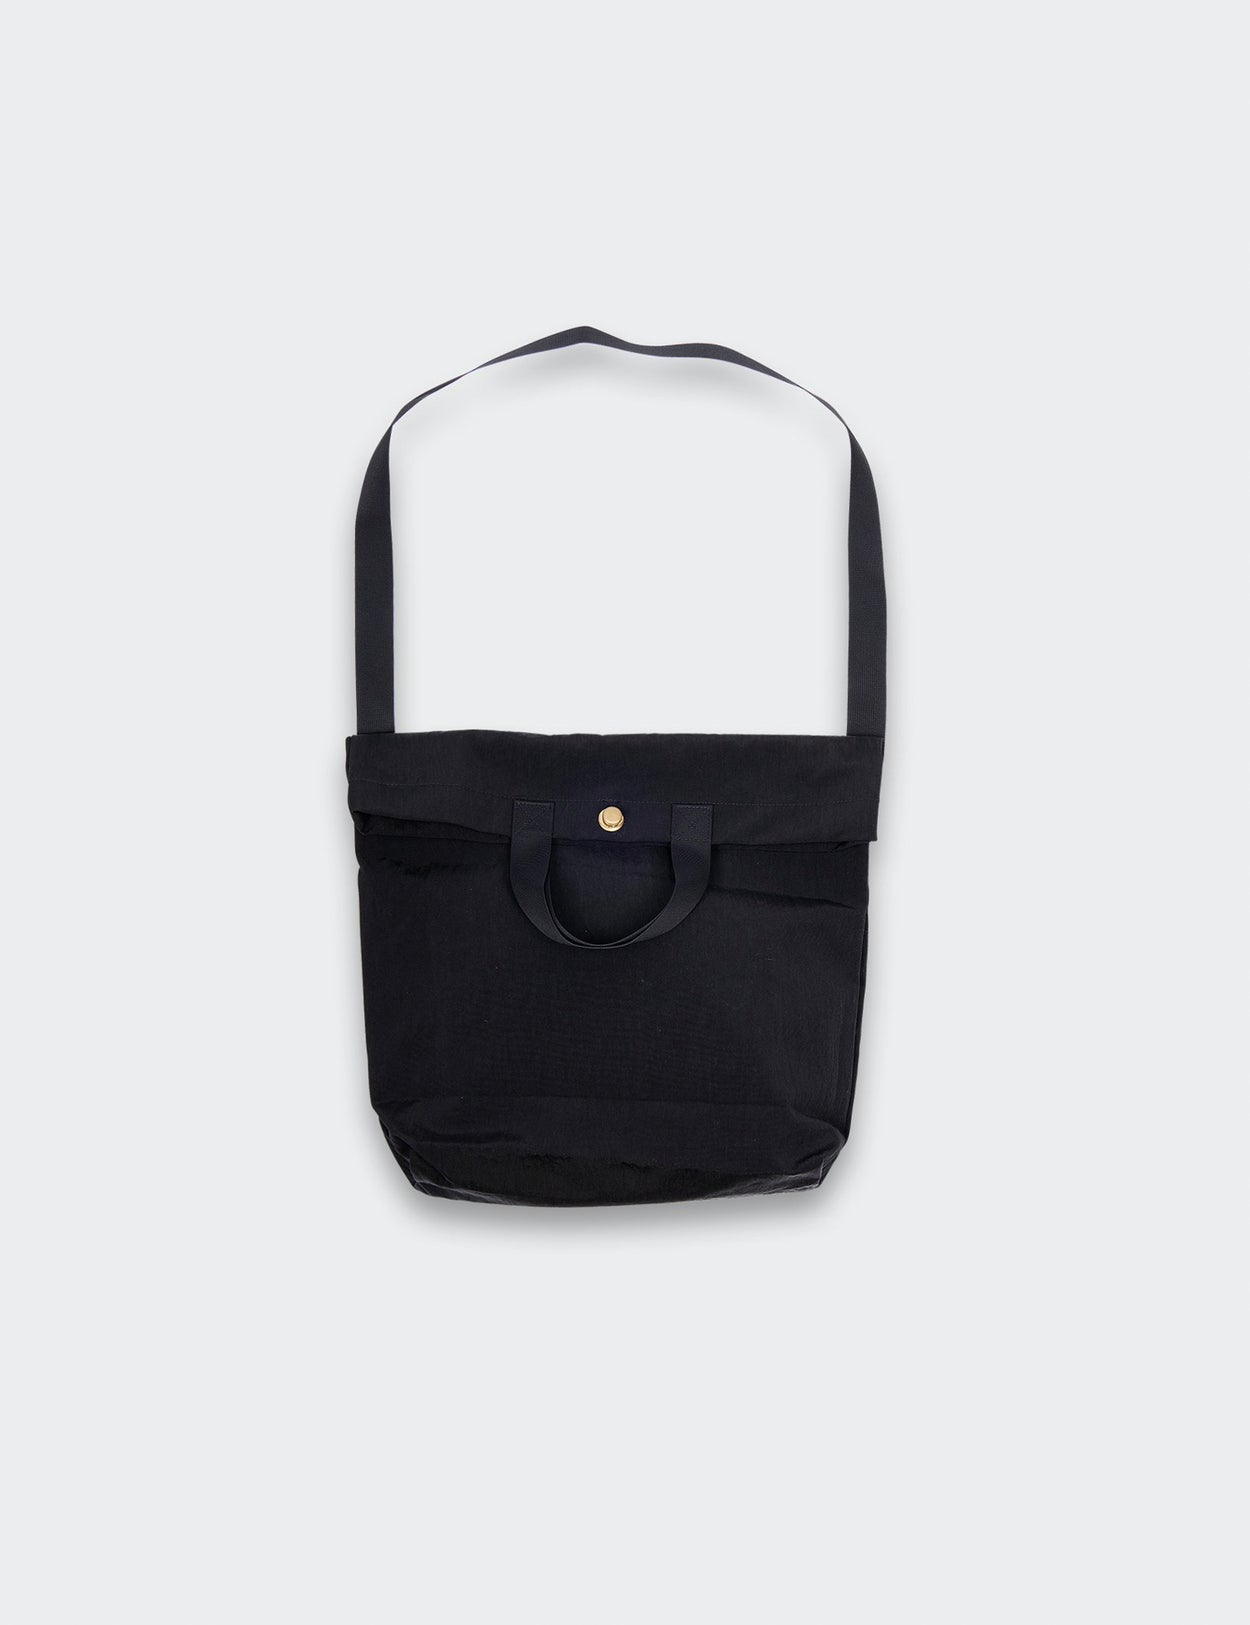 BLACK MULTI HANDLE CANOPY NYLON TOTE